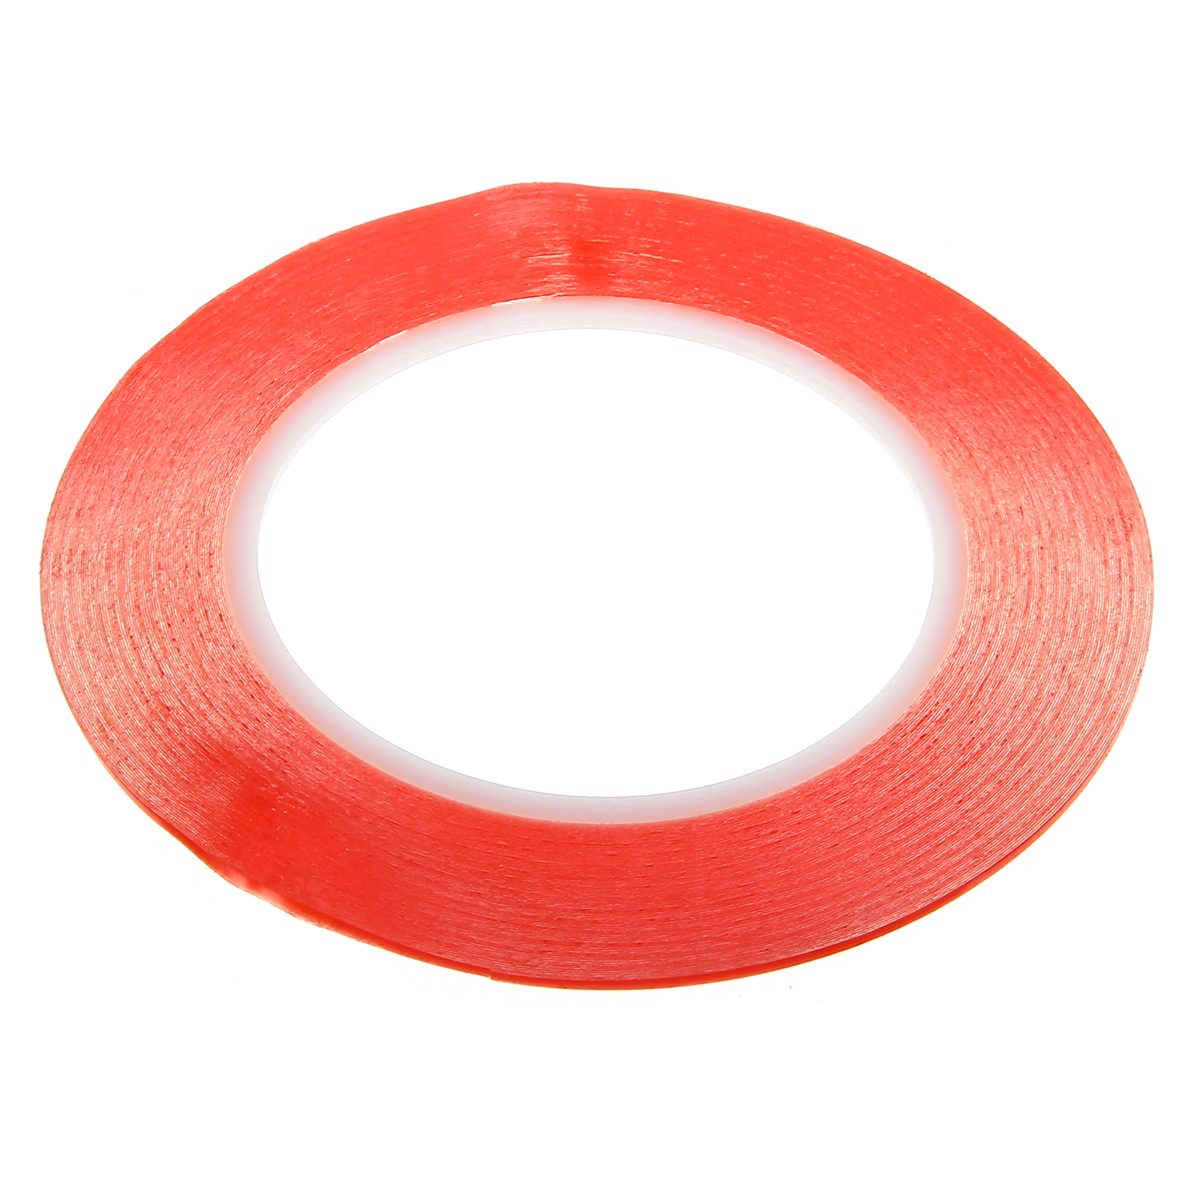 1pc-red-film-double-sided-sticky-adhesive-tape-25m-transparent-high-temperature-resistance-tapes-for-cell-phone-repair